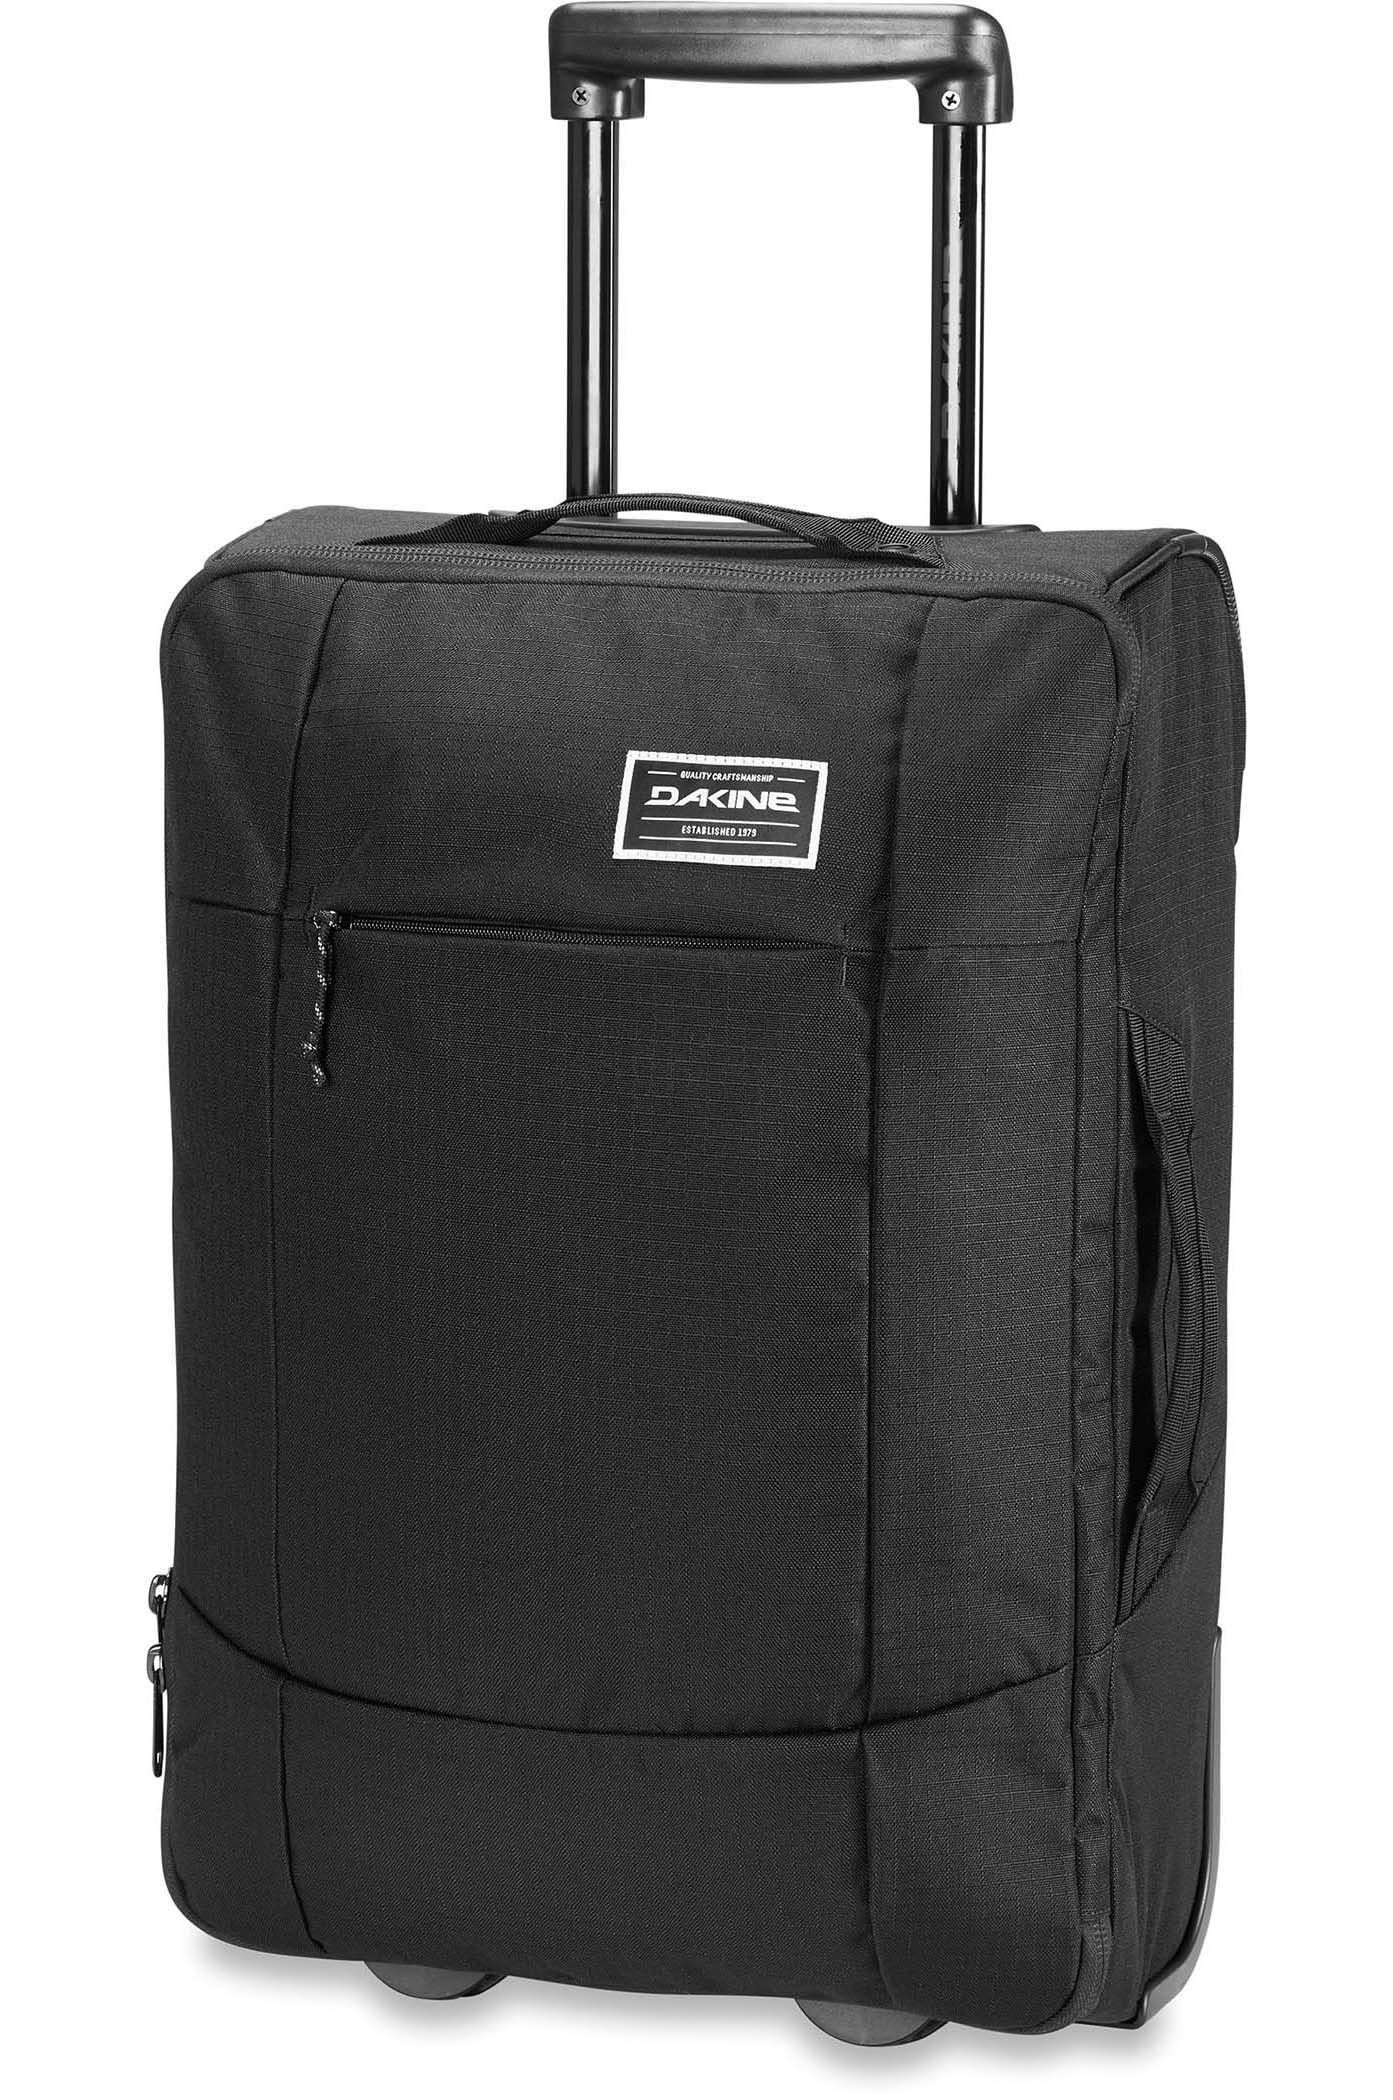 Mala Viagem Dakine CARRY ON EQ ROLLER 40L Black